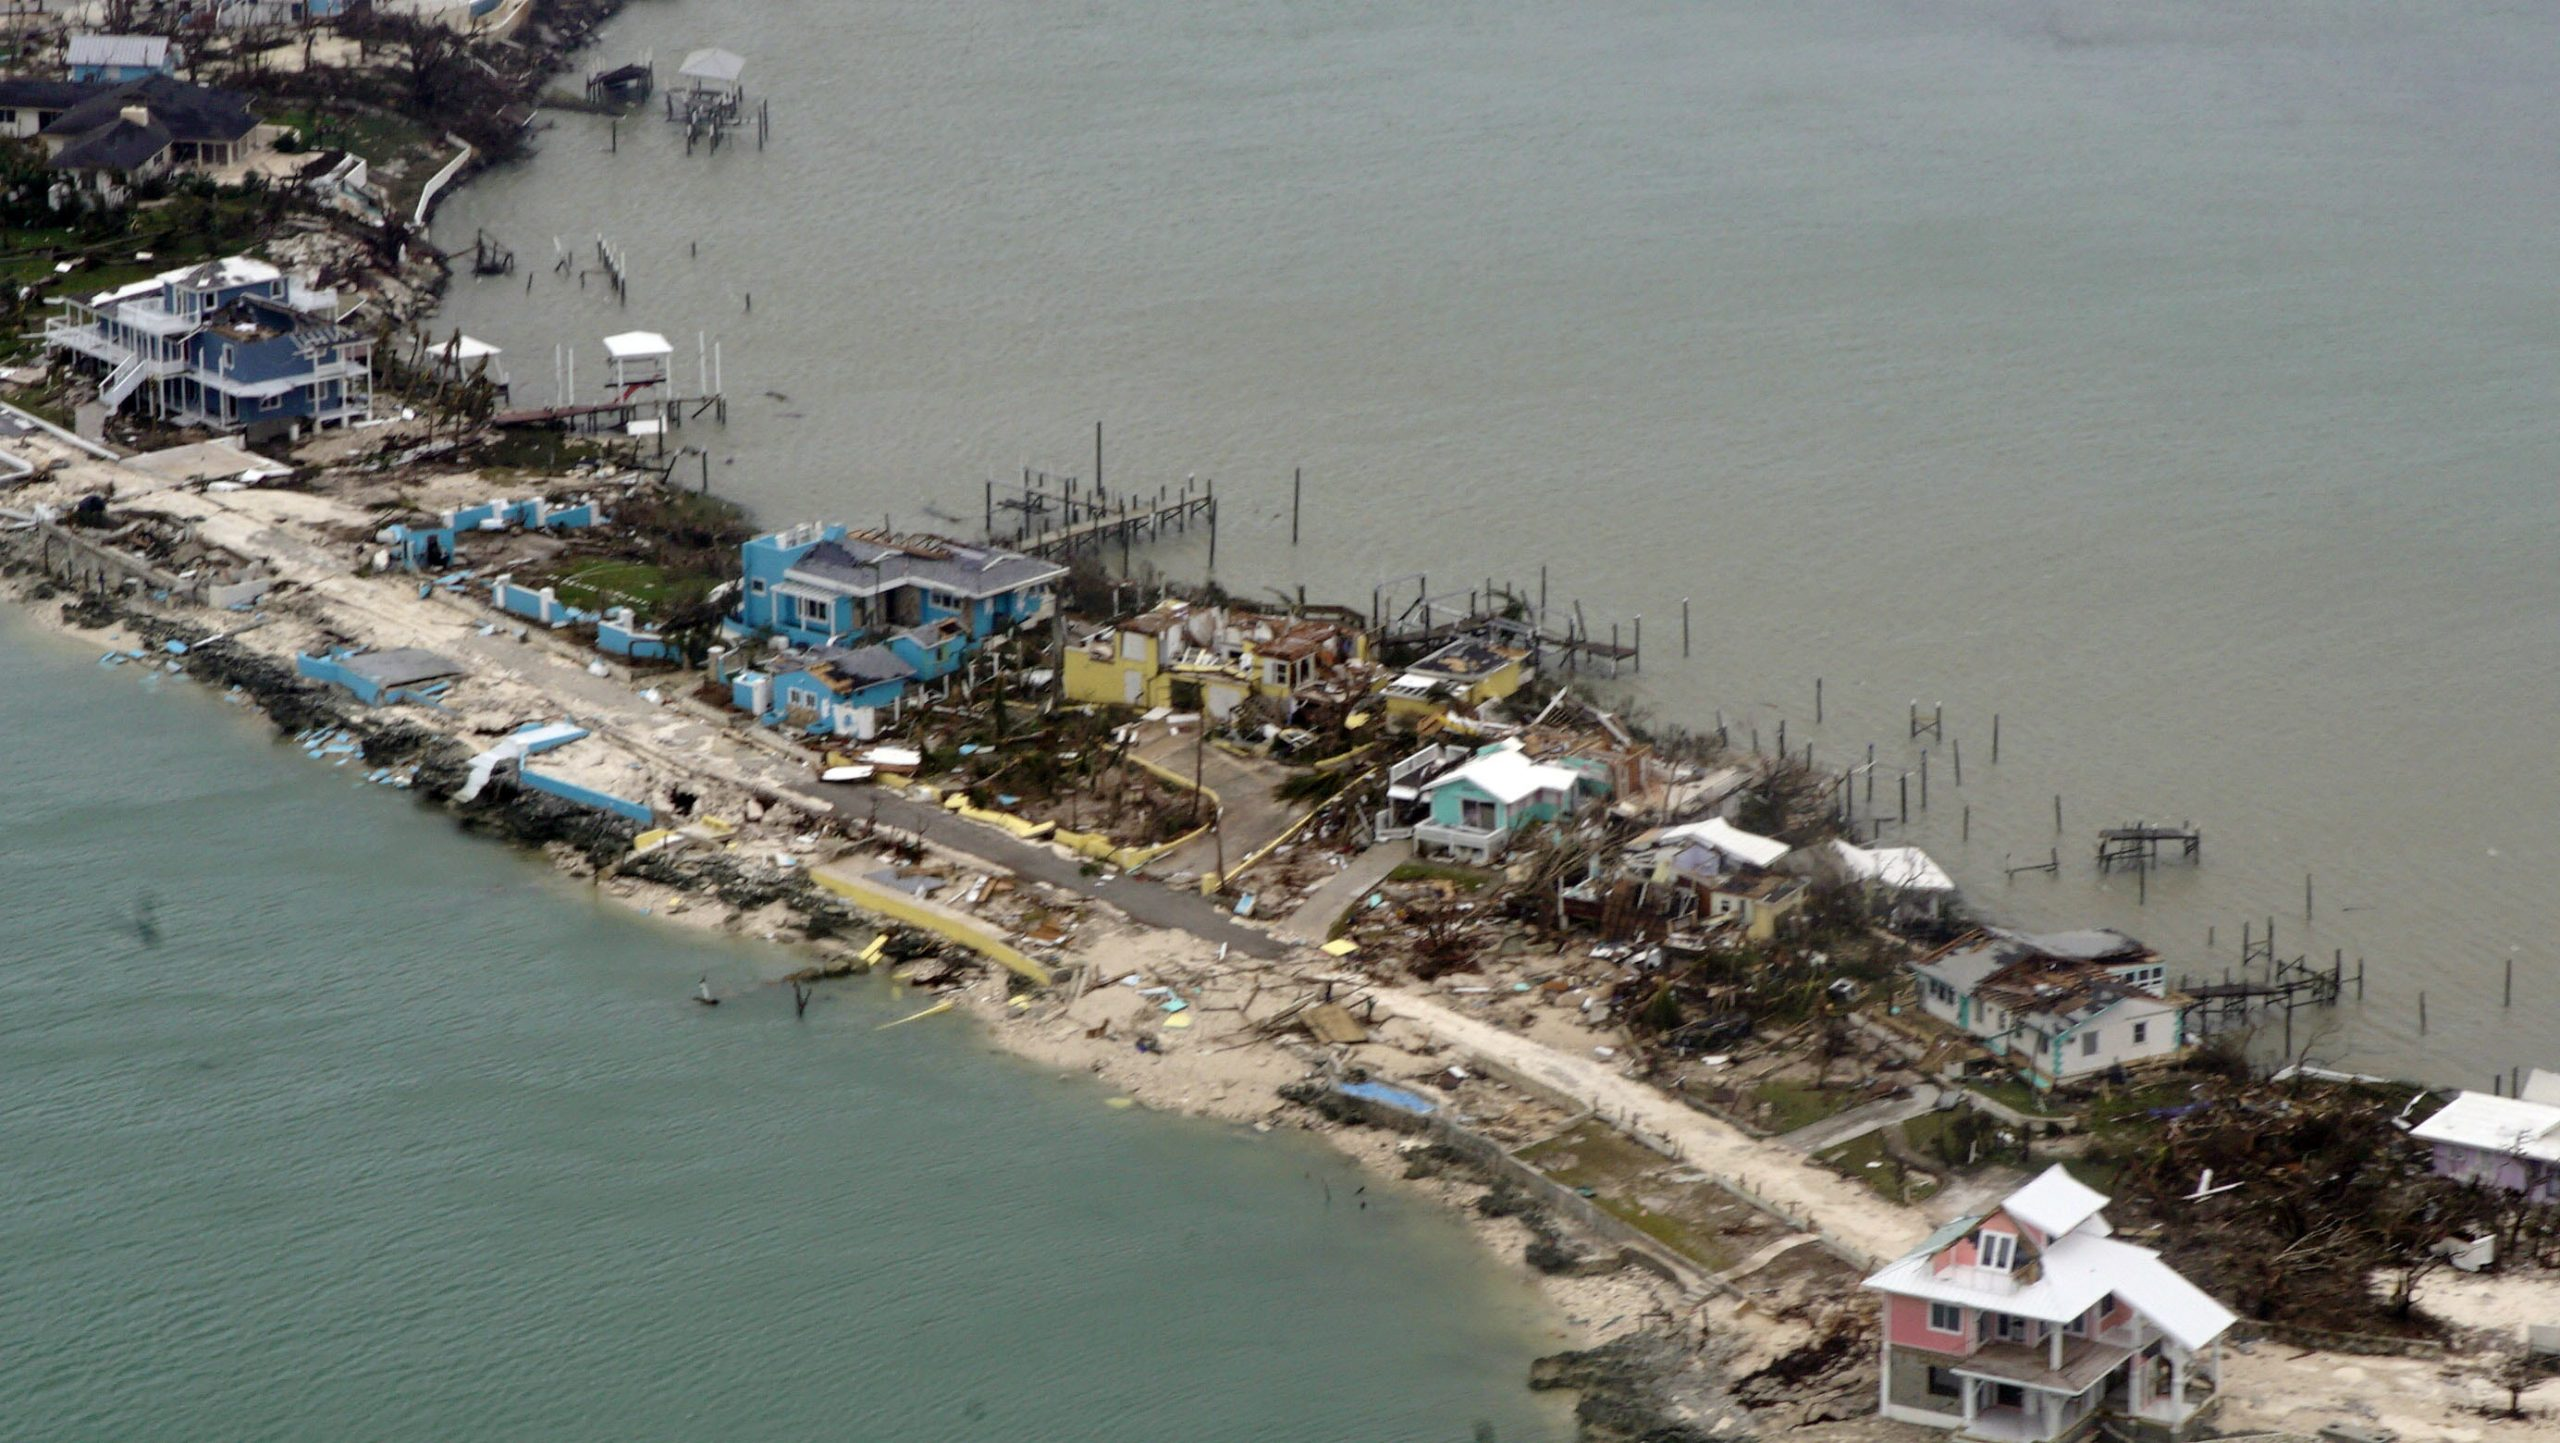 CDEMA'S ASSESSMENT OF DAMAGE IN ABACO AND GRAND BAHAMA